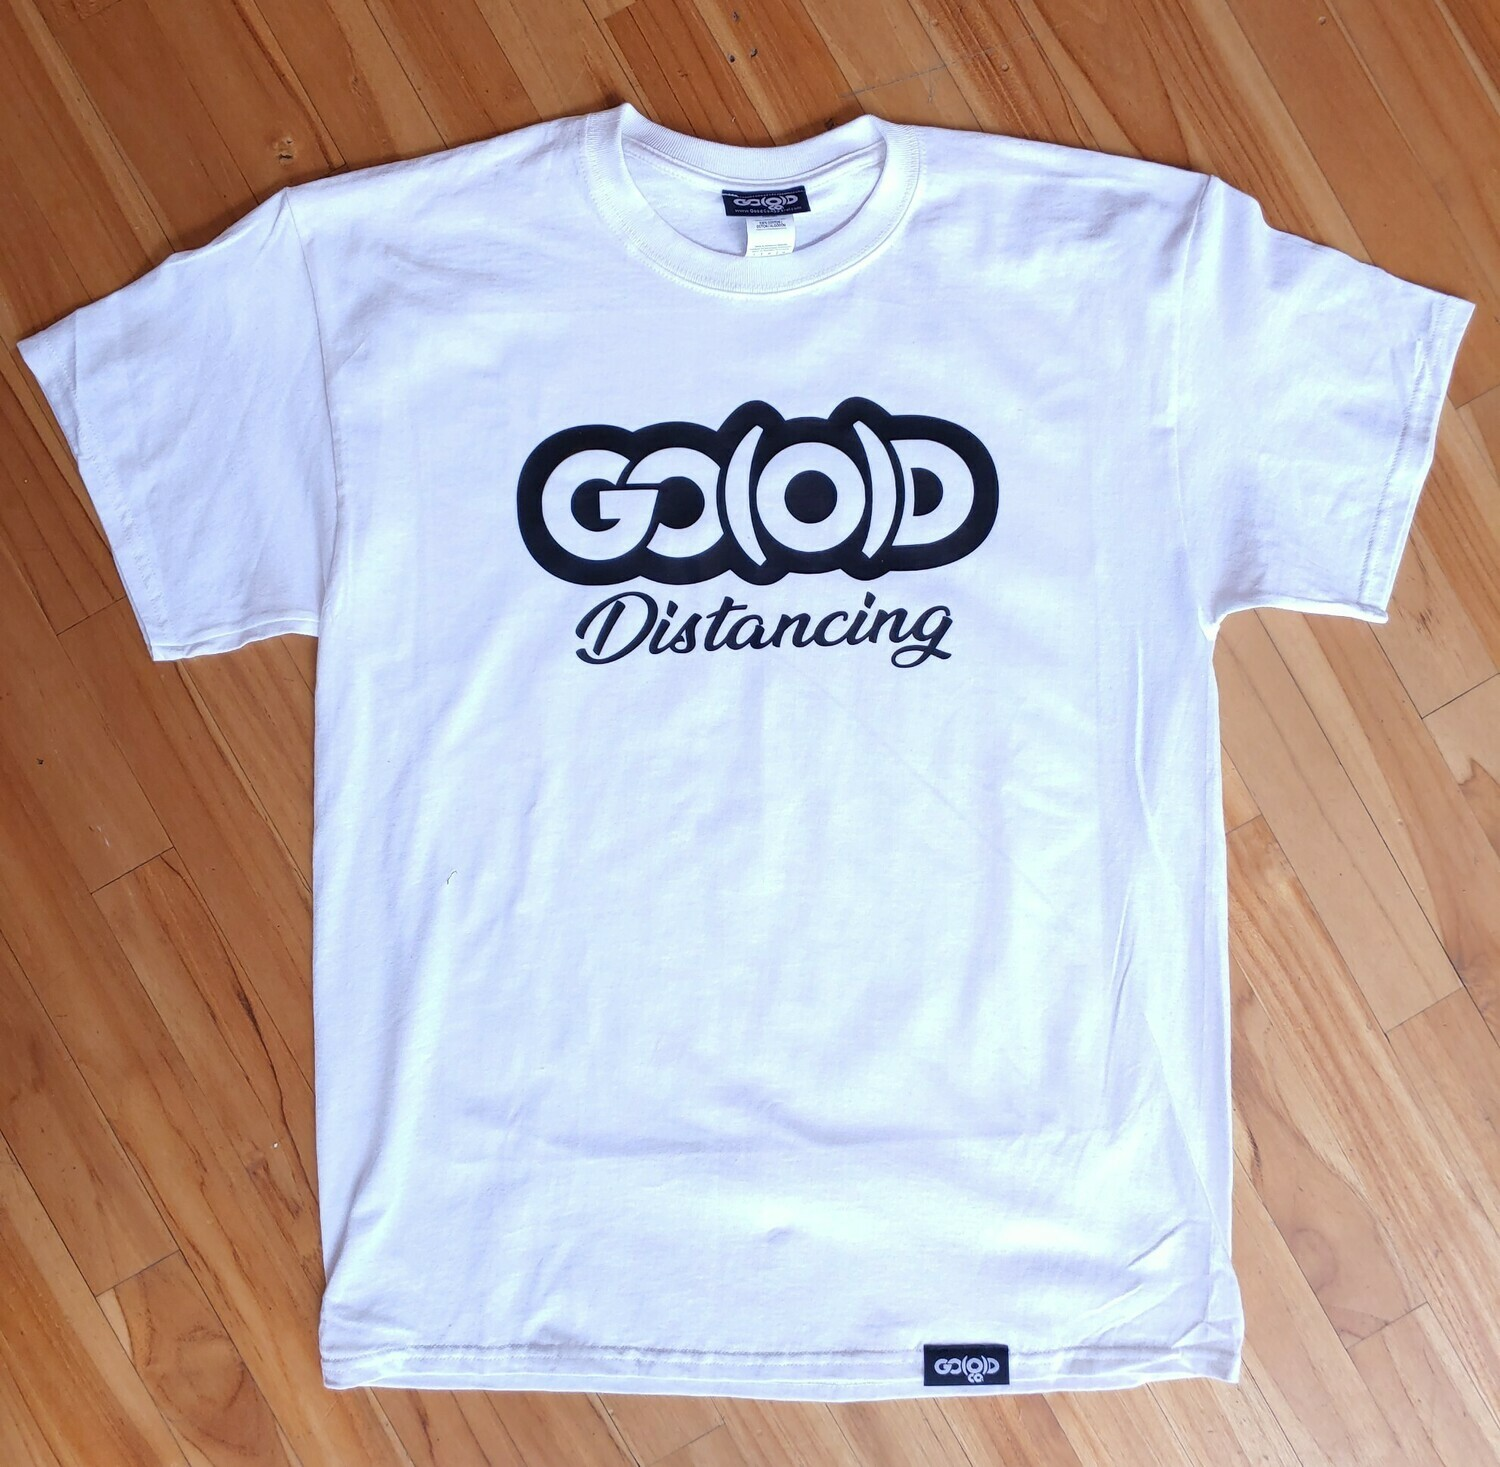 GO(O)D Distancing tee-white/black